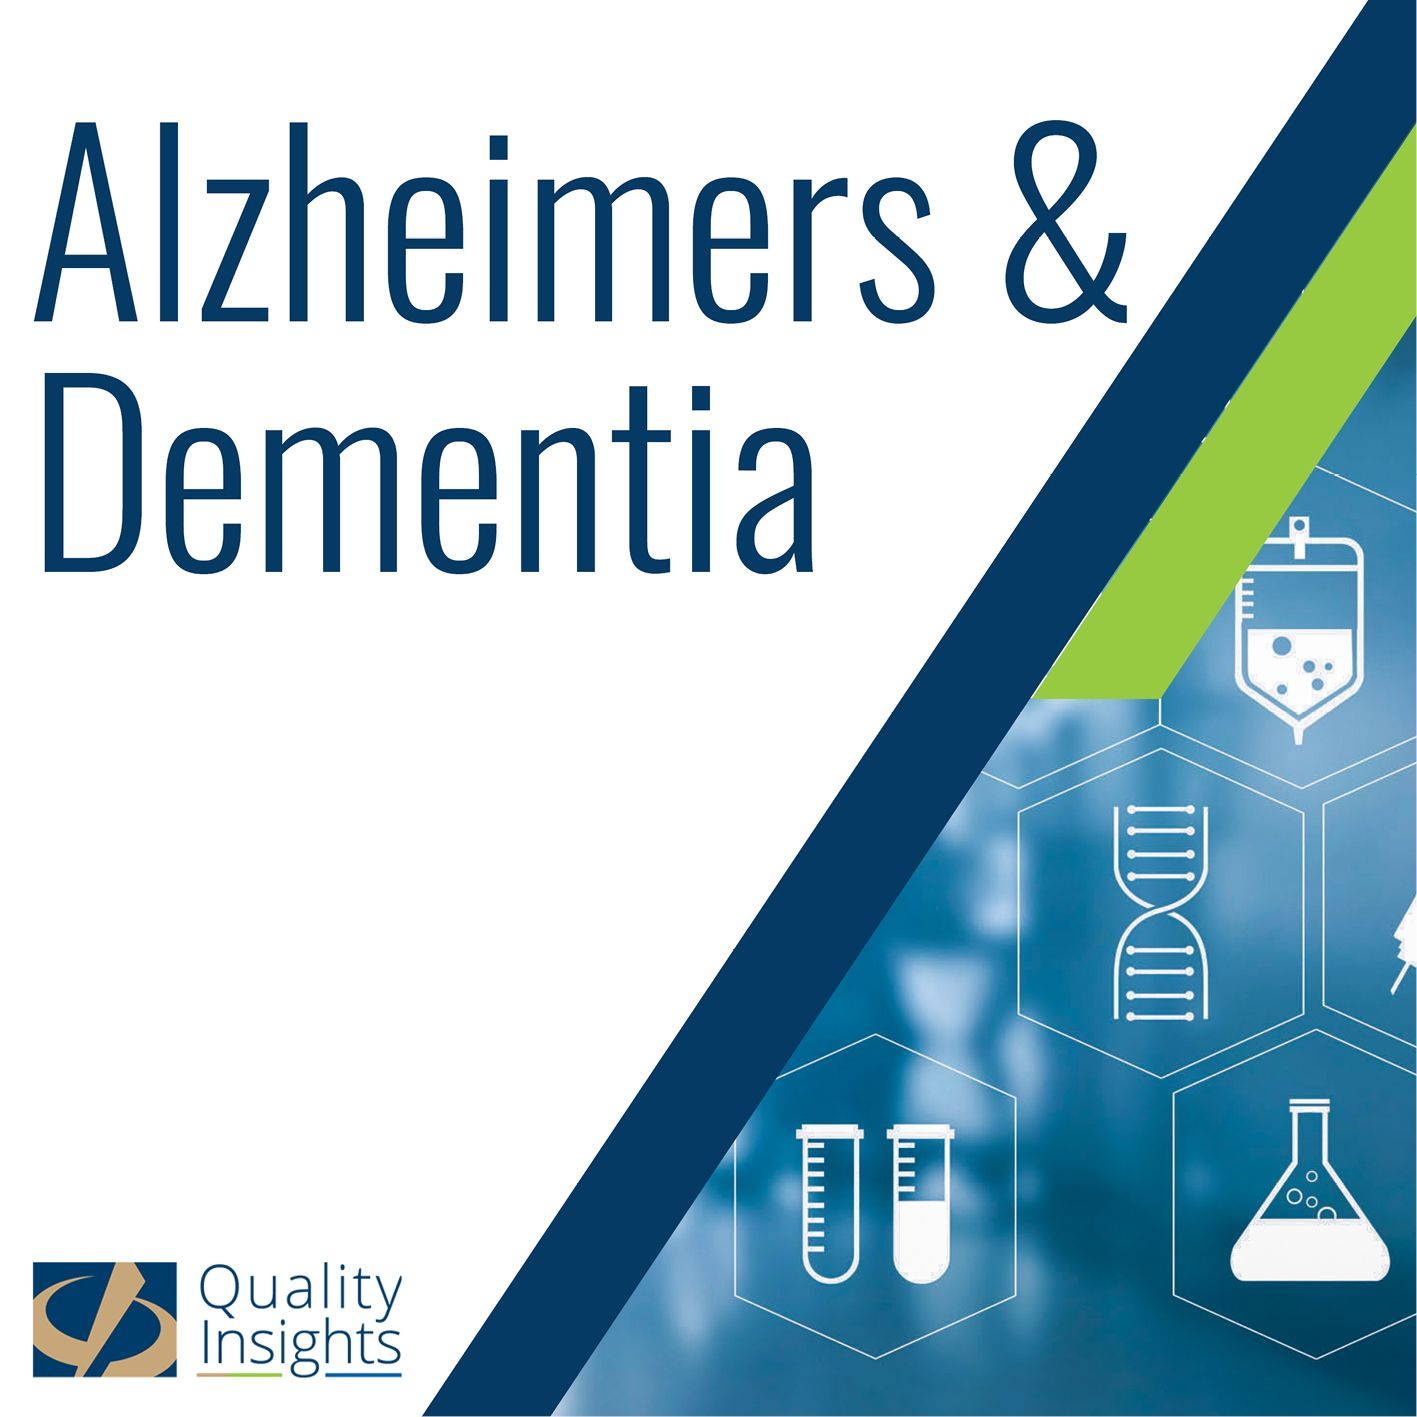 Alzheimers & Dementia What To Look For Alzheimer's and